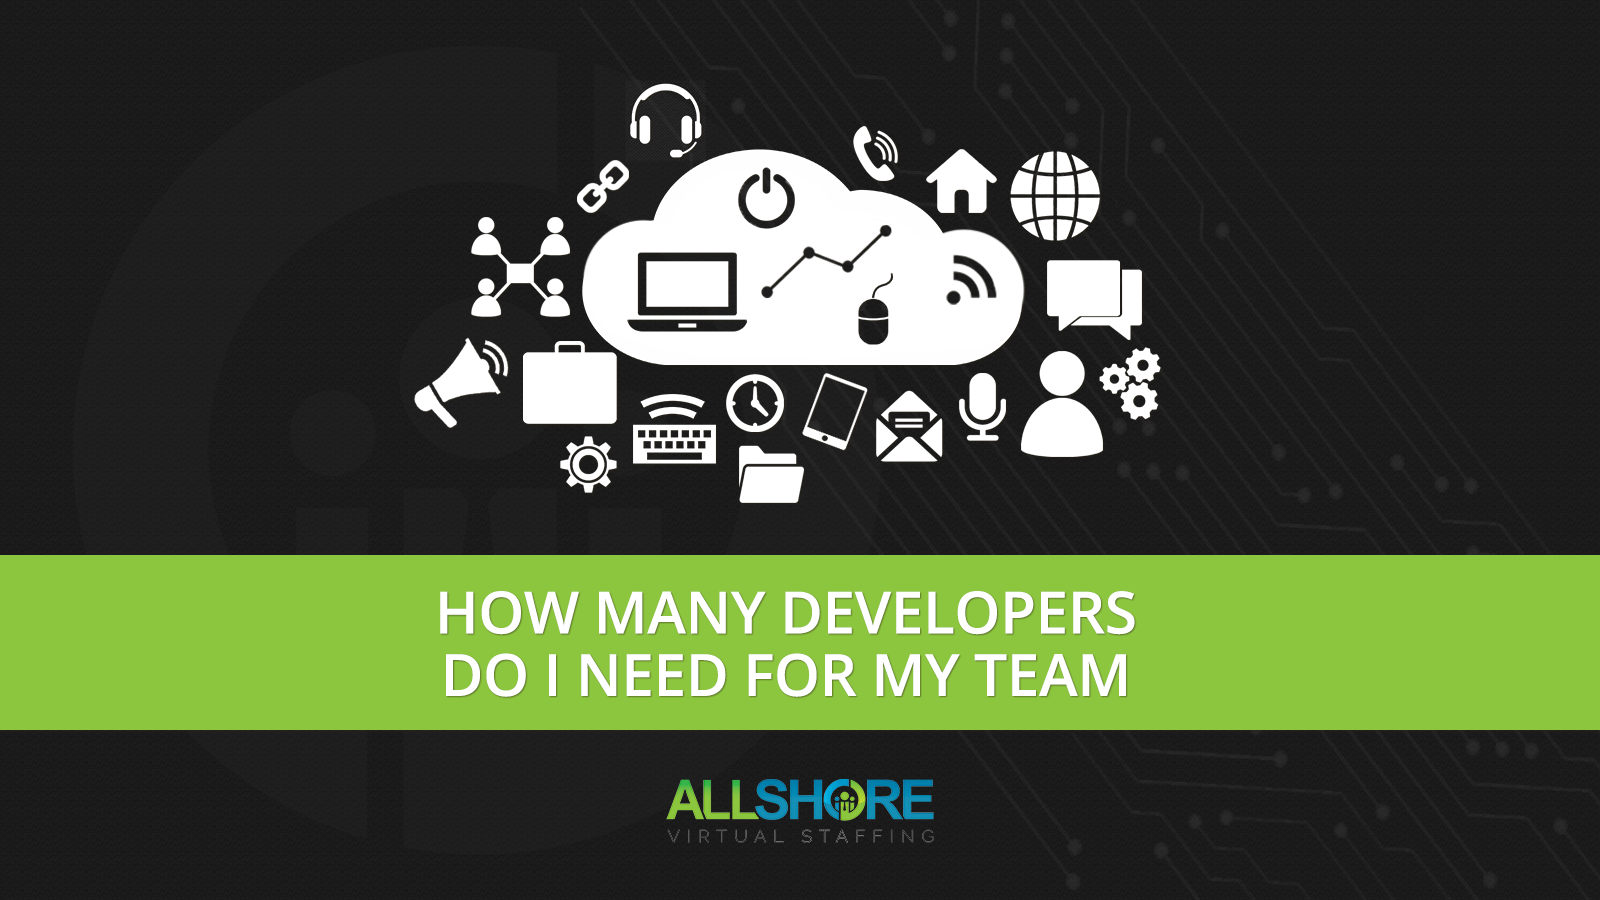 How Many Developers Do I Need for My Team